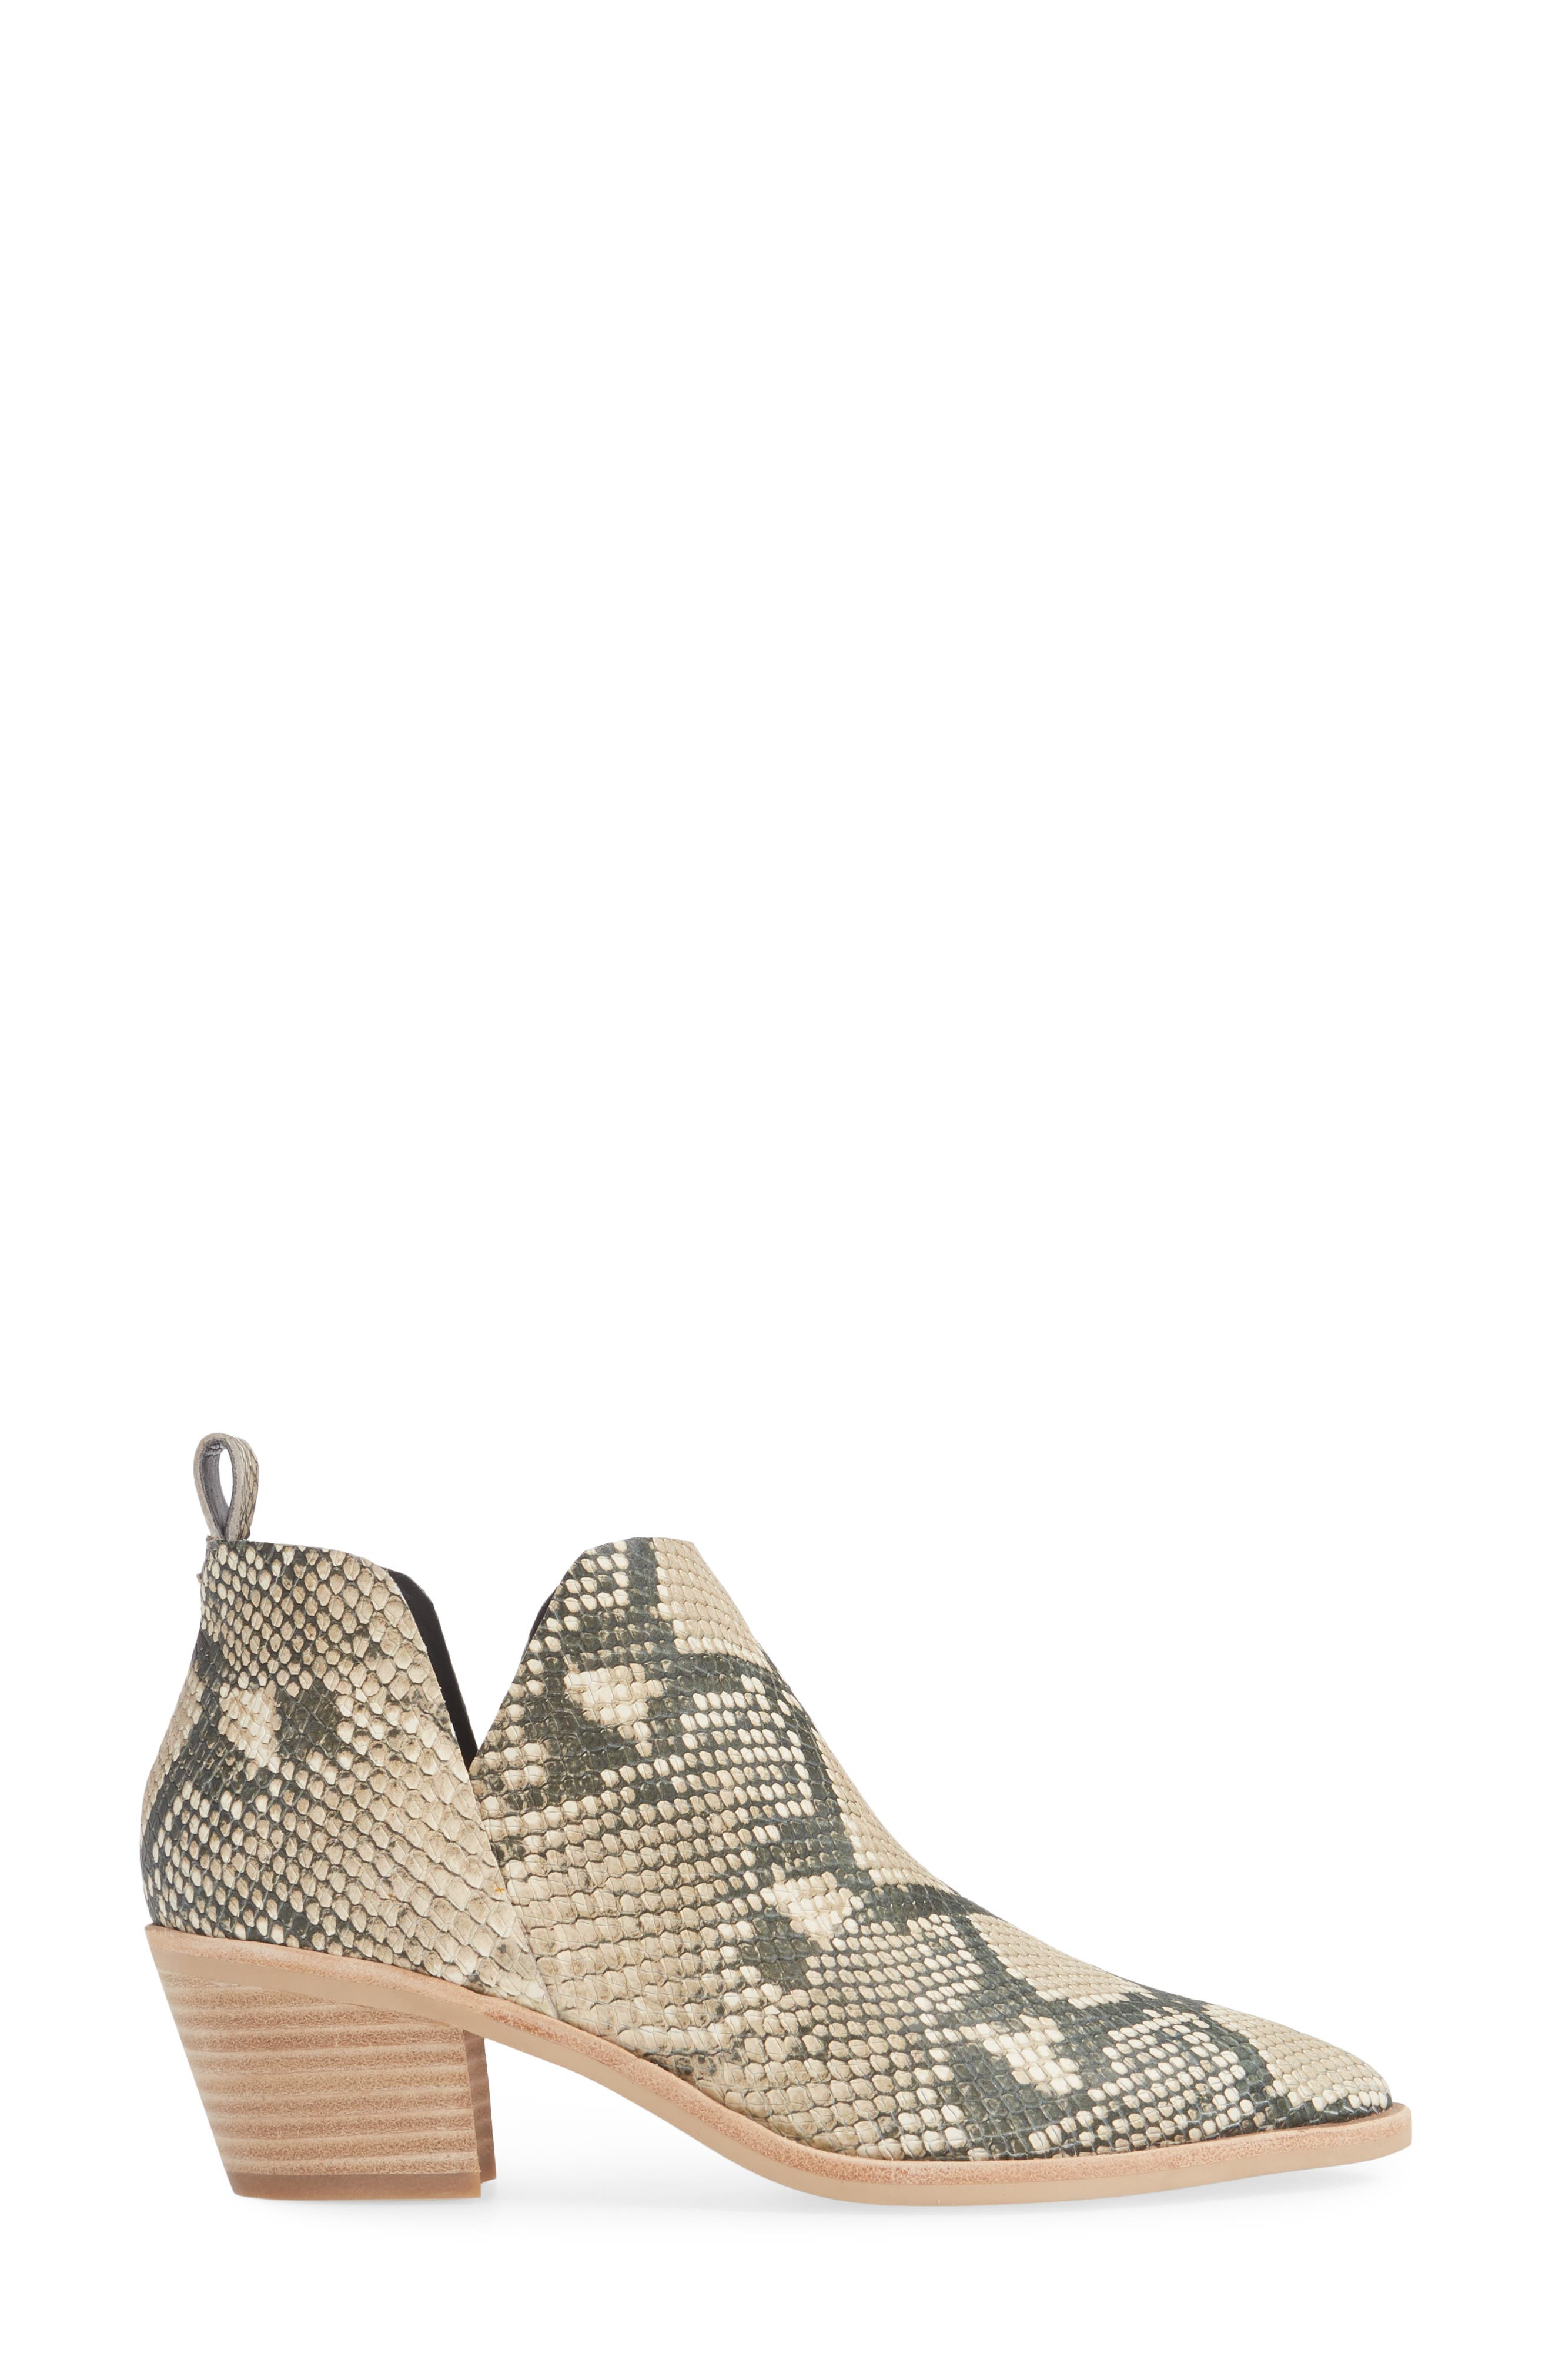 DOLCE VITA,                             Sonni Pointy Toe Bootie,                             Alternate thumbnail 3, color,                             SNAKE PRINT EMBOSSED LEATHER